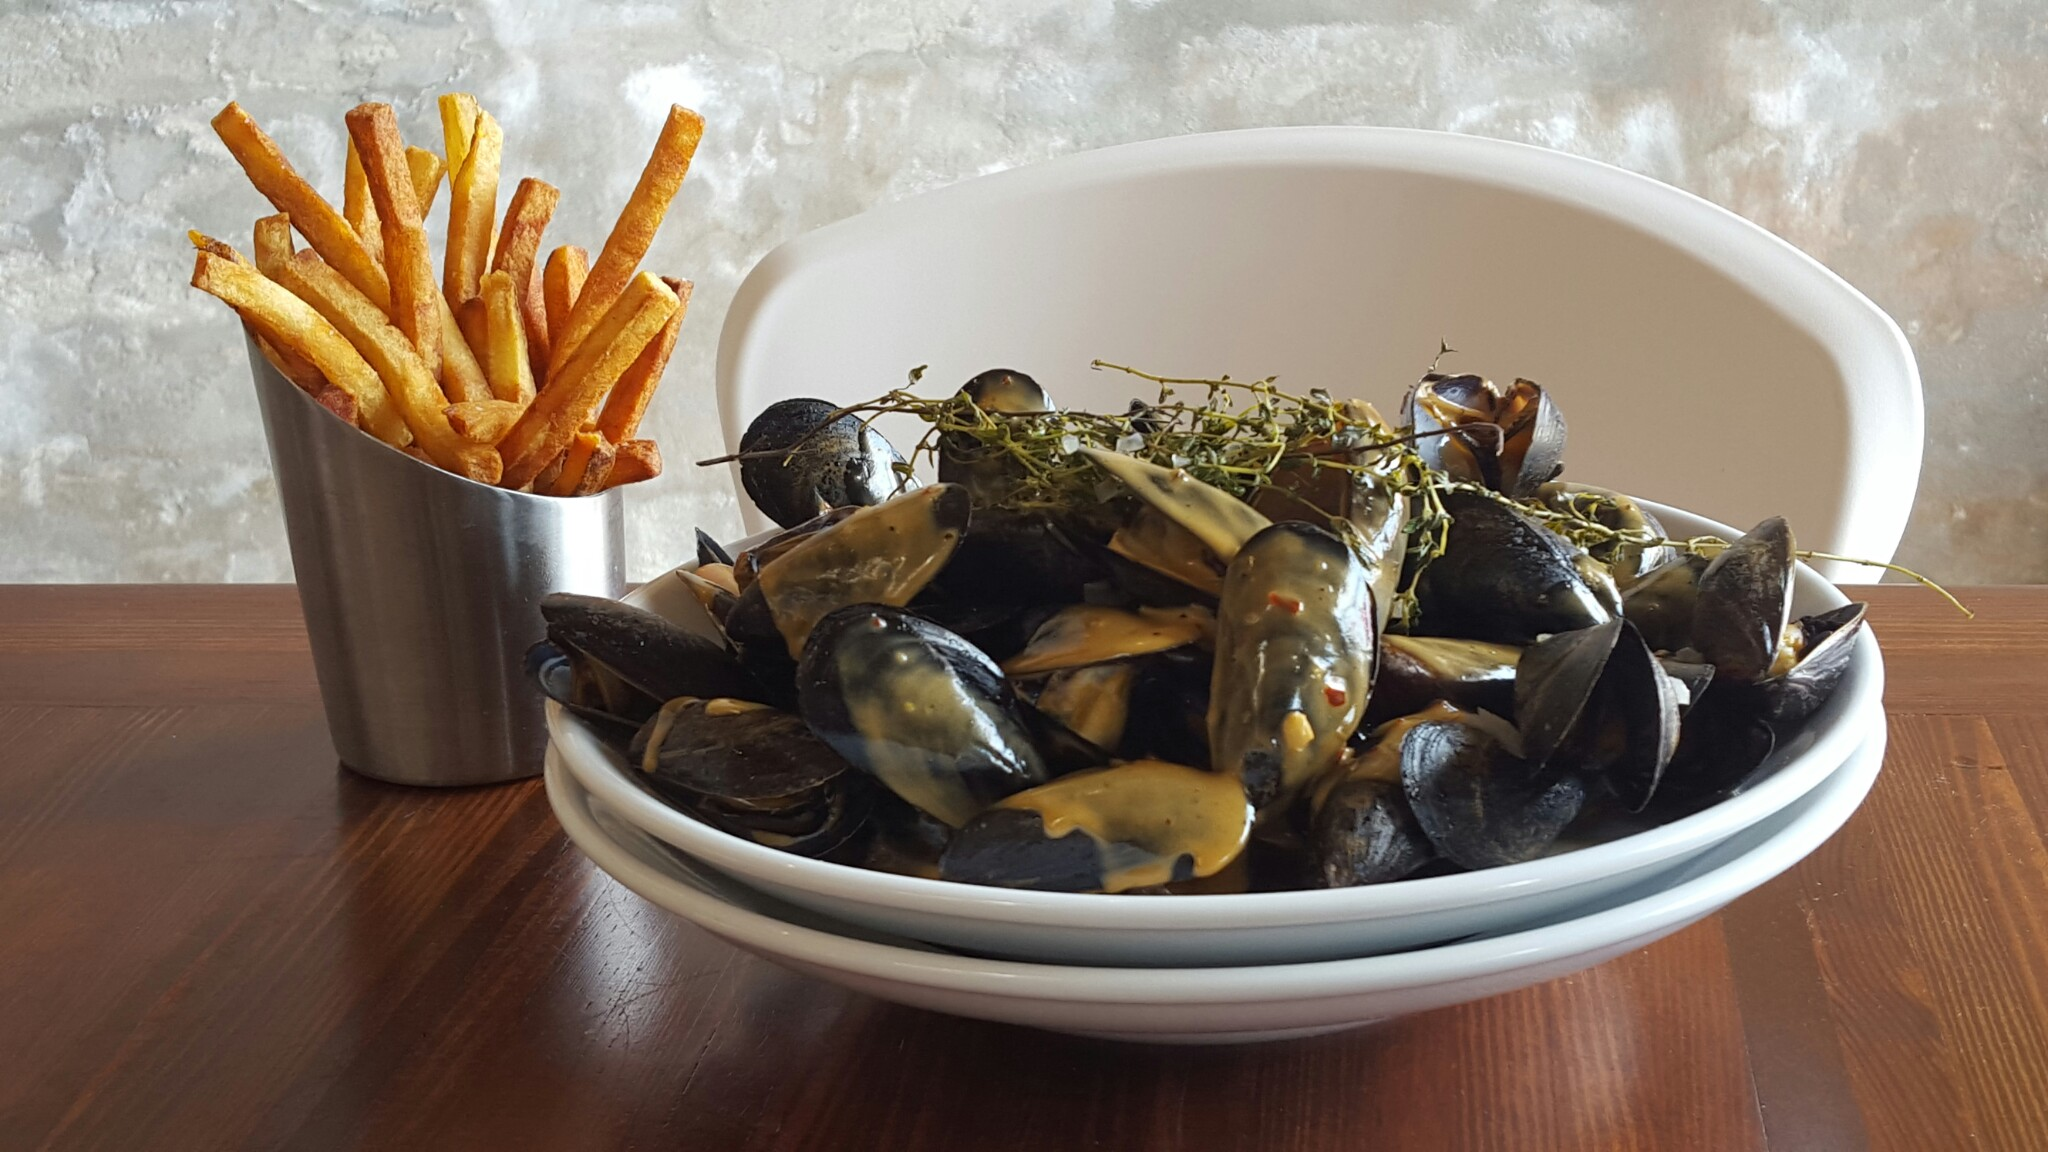 Mussels and Fries at Press Street Station